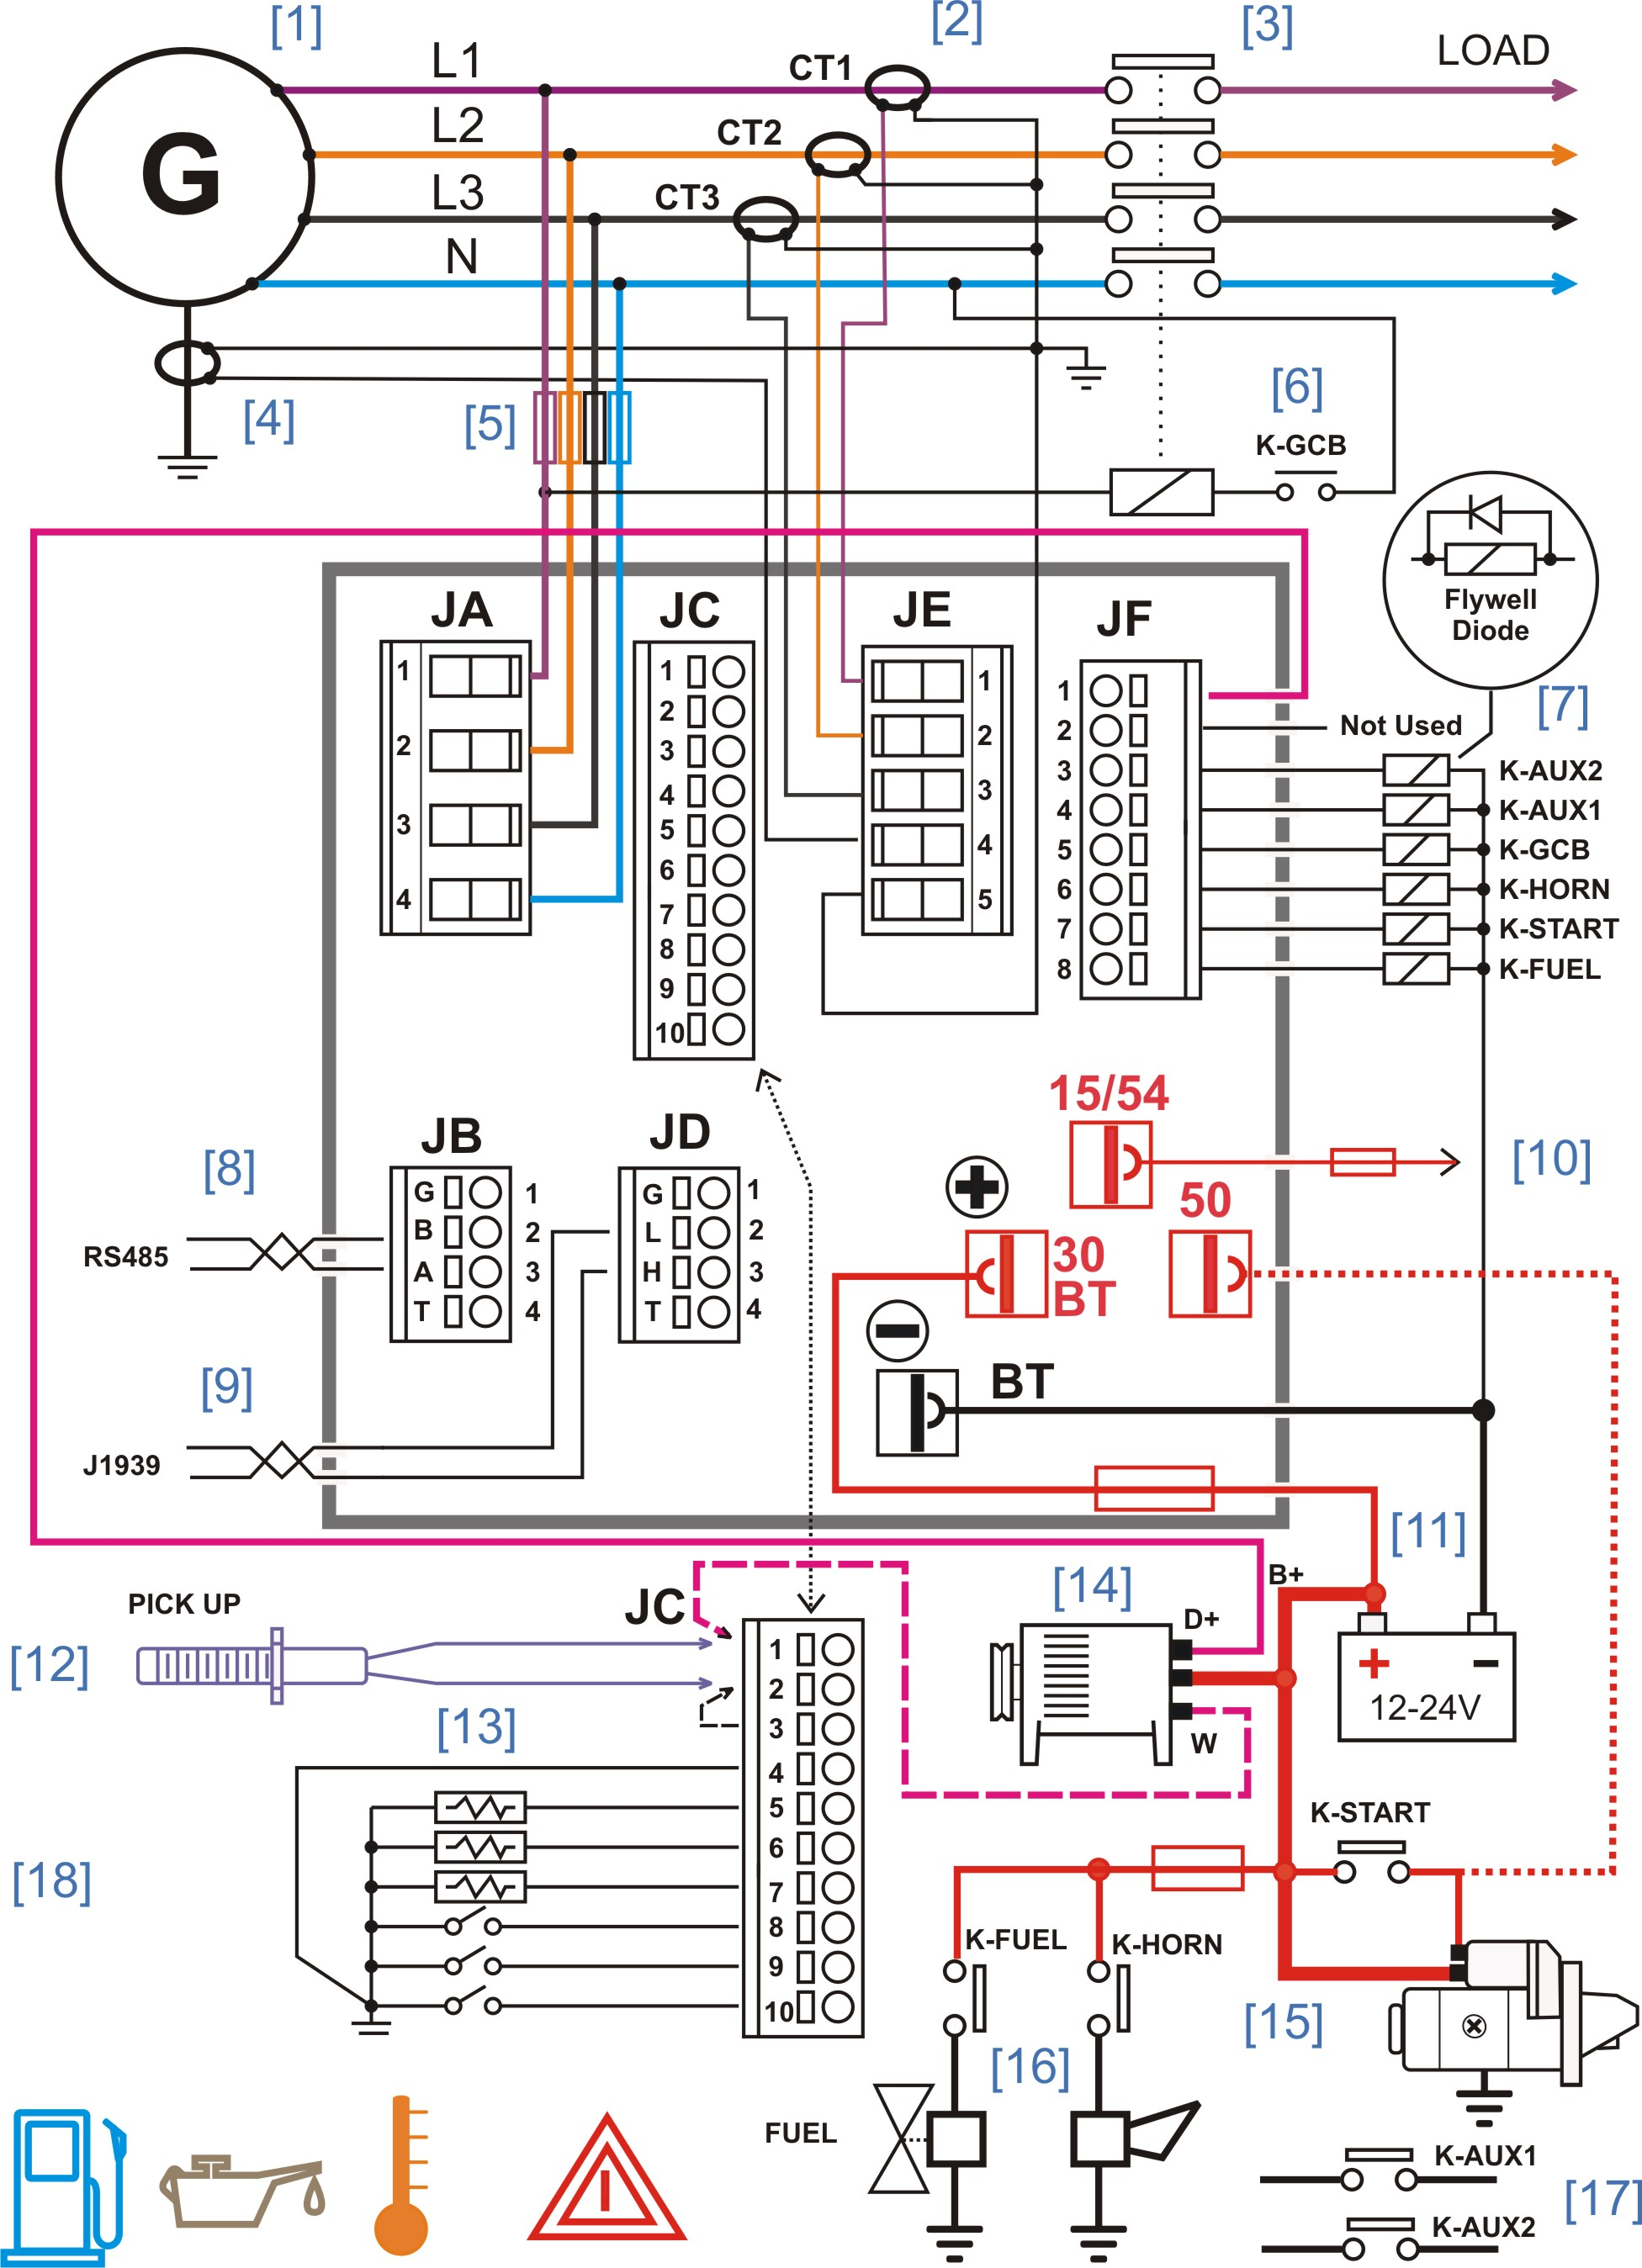 generator controller wiring diagram genset controller rh bernini design com 3 wire control circuit diagram electrical control circuit wiring diagram